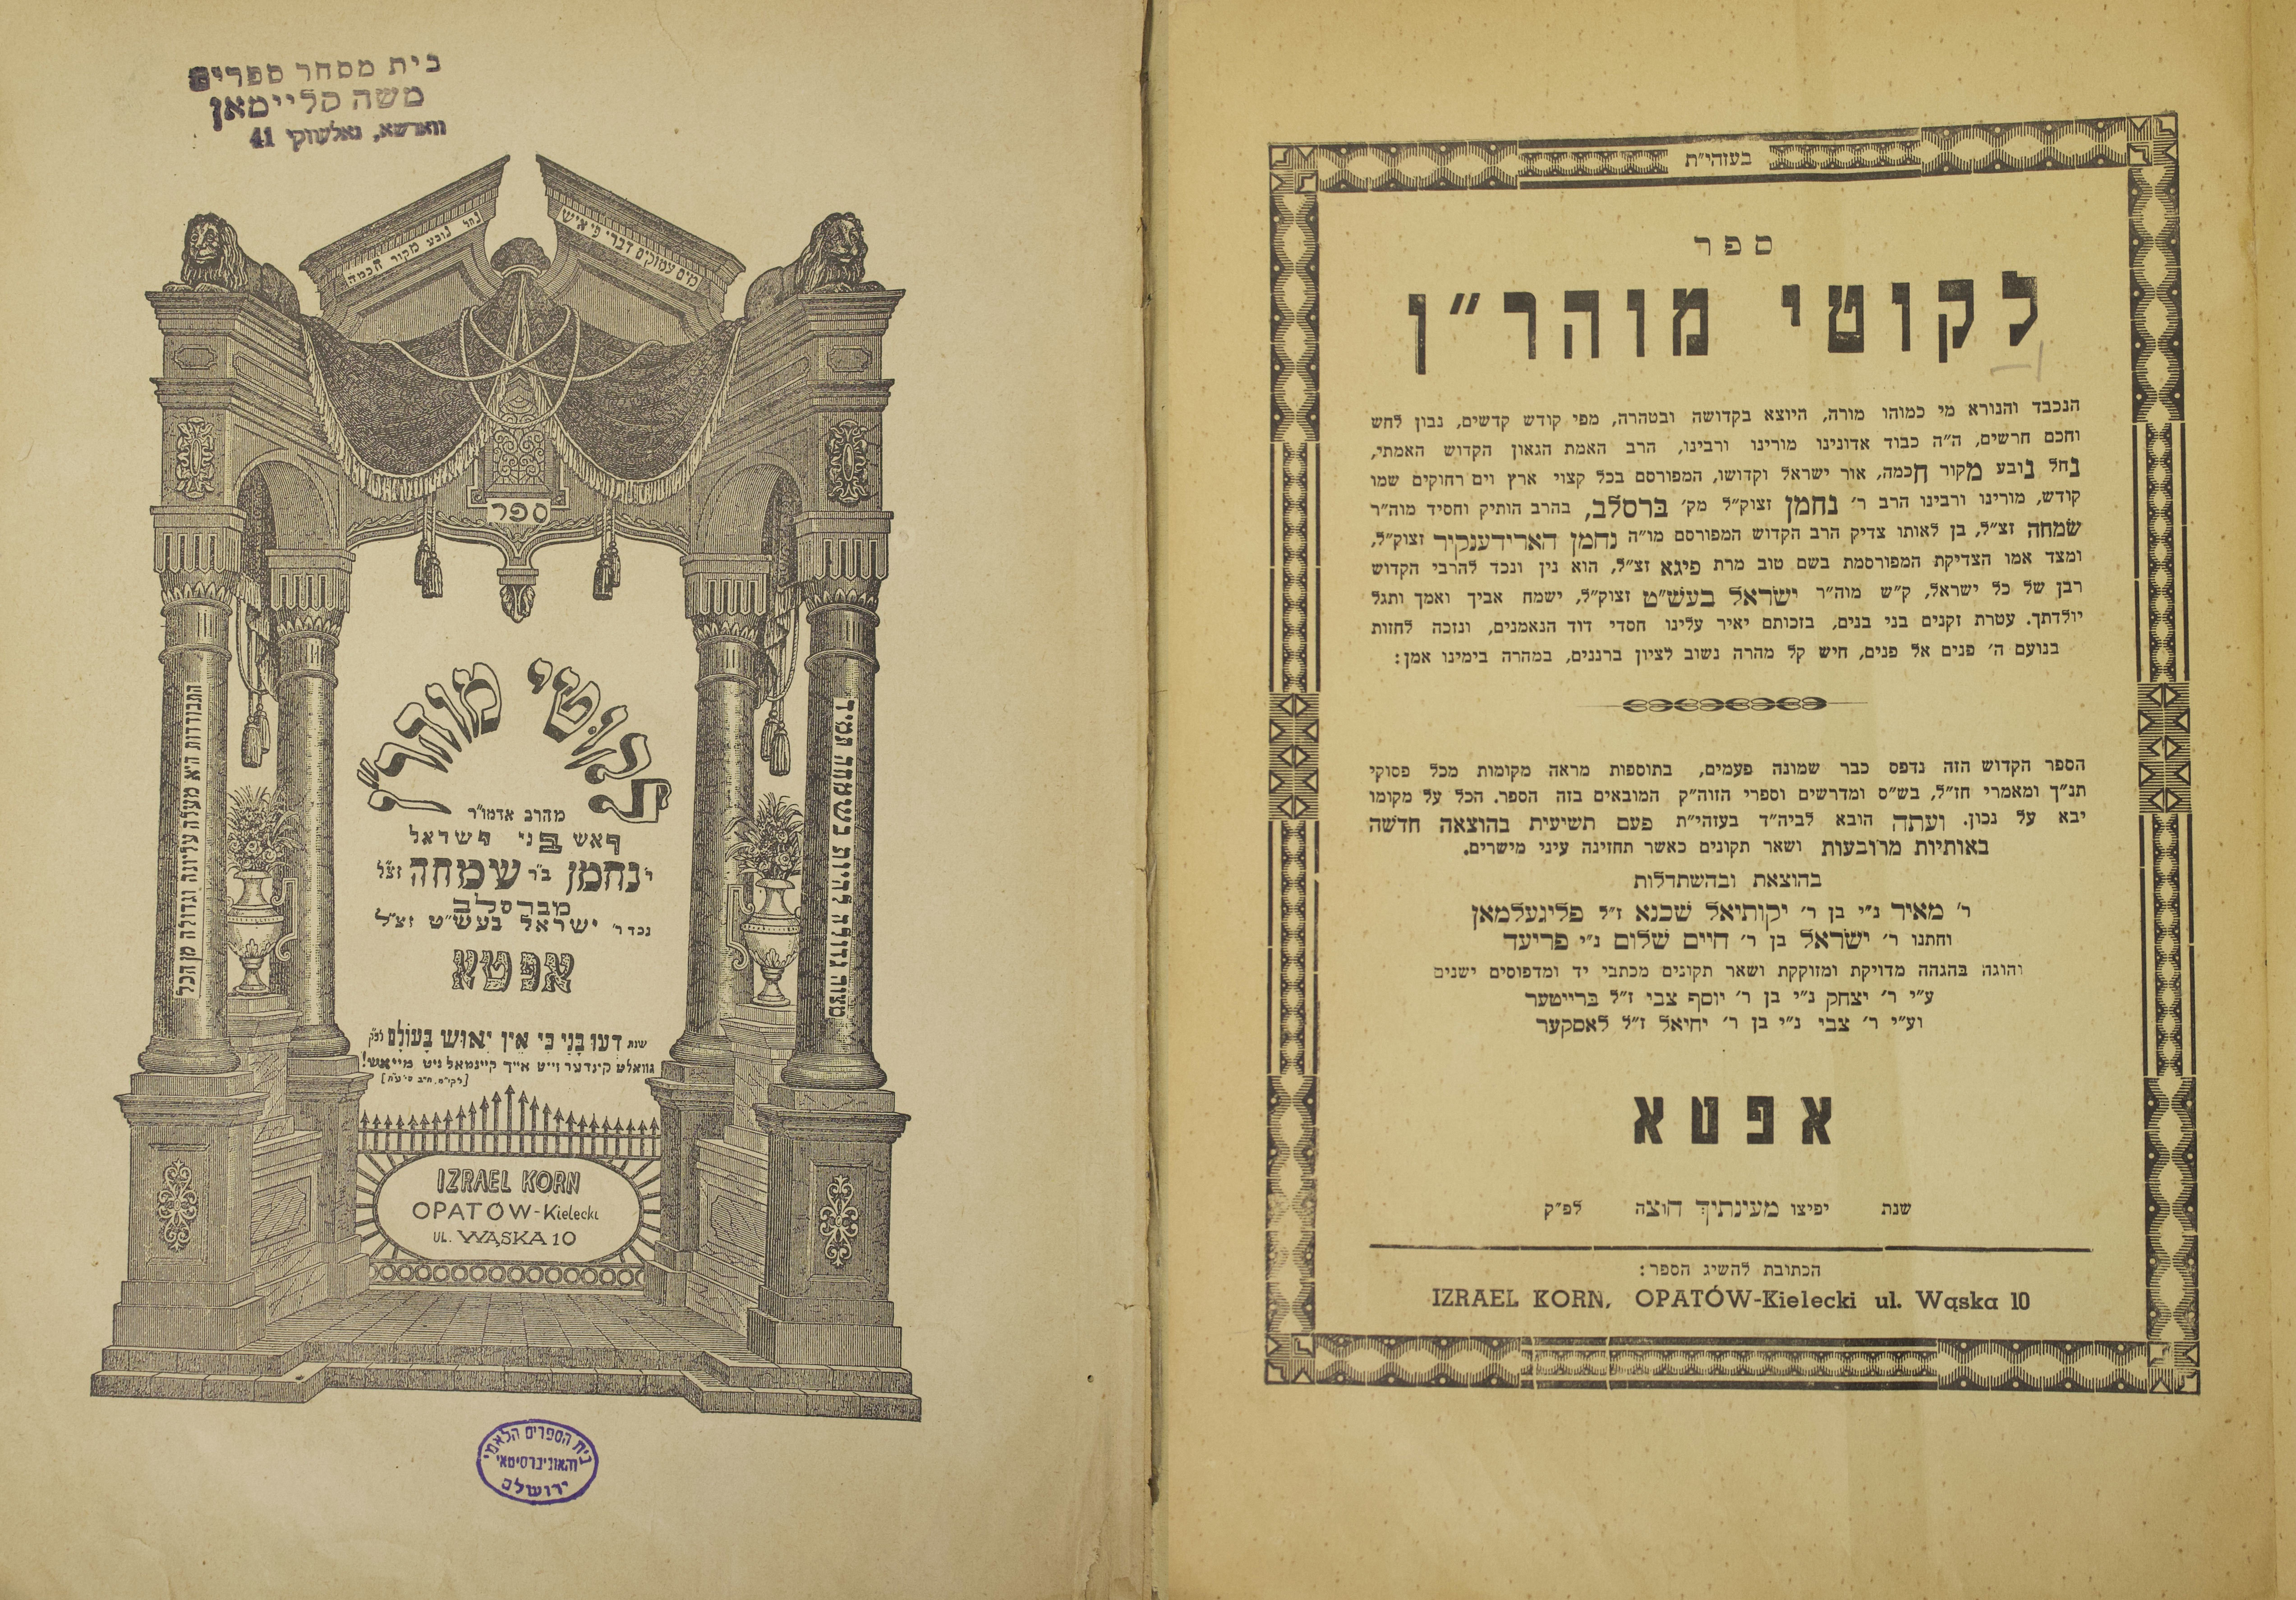 "<p>Twin title pages, the Apta edi­tion of Likutei Moha­ran, redact­ed by Brayter and Lasker, from the col­lec­tion of the Nation­al Library of Israel, Jerusalem. Their names, and the names of their fathers, appear above the thick block let­ters of <span class=""push-double""></span>​<span class=""pull-double"">""</span>Apta"" (=Opatów, in Pol­ish), the place of print­ing. The gema­tria cor­re­spond­ing to the year of print­ing — <span class=""numbers"">1938</span> — is formed from the Hebrew words: <span class=""push-double""></span>​<span class=""pull-double"">""</span>Know, my chil­dren, for there is no despair in the world."" In small­er let­ters below this, in Yid­dish: <span class=""push-double""></span>​<span class=""pull-double"">""</span>Givald, chil­dren, nev­er despair!"" (Both are quotes of Reb Nakhmen, with the addi­tion of the words <span class=""push-double""></span>​<span class=""pull-double"">""</span>chil­dren."") On the left col­umn: <span class=""push-double""></span>​<span class=""pull-double"">""</span>His­boyd­e­dus is a&nbsp;lofty lev­el, and greater than all"" (<span class=""caps"">LM</span> <span class=""caps"">II</span> <span class=""numbers"">25</span>). On the right col­umn: <span class=""push-double""></span>​<span class=""pull-double"">""</span>It is a&nbsp;great mitz­vah to be joy­ous always"" (<span class=""caps"">LM</span> <span class=""caps"">II</span> <span class=""numbers"">24</span>). The page is stamped with the stamps of a&nbsp;Jew­ish book­seller on famous Nalew­ki street, the heart of pre-war Jew­ish War­saw; and that of The Nation­al Library of Israel, where the books cur­rent­ly resides. This is the first edi­tion of <span class=""caps"">LM</span> to have been print­ed in <span class=""push-double""></span>​<span class=""pull-double"">""</span>block,"" as opposed to Rashi&nbsp;script.</p>"